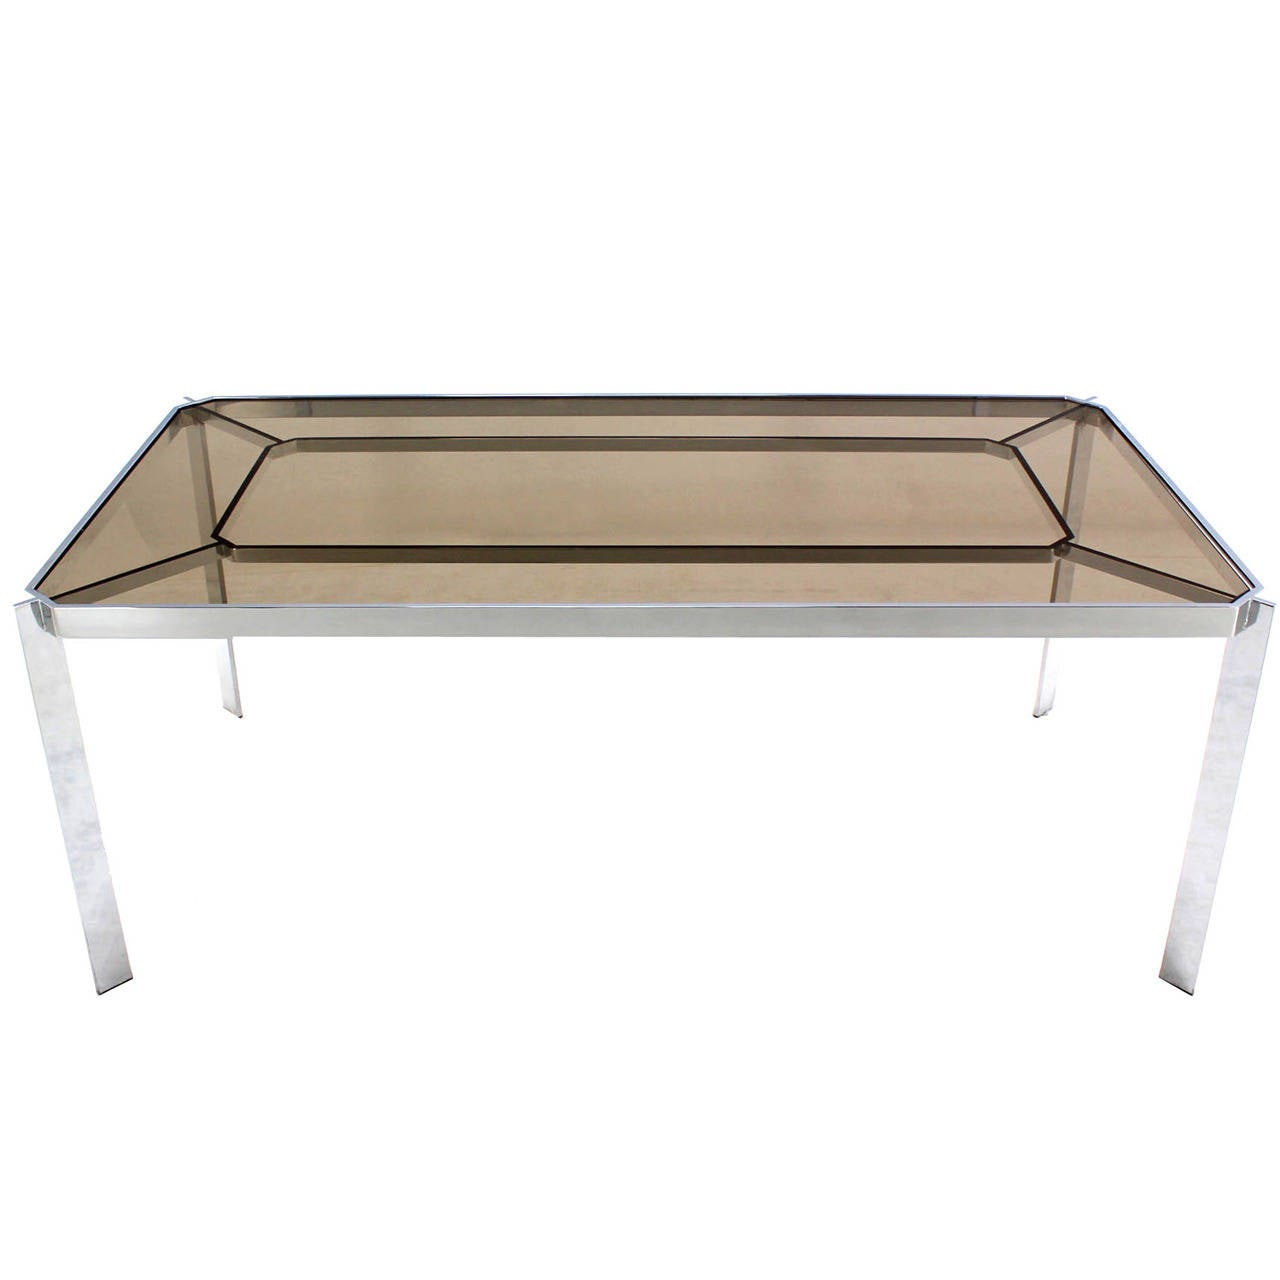 MidCentury Modern Chrome And Smoked GlassTop Dining Table By - Glass top mid century dining table